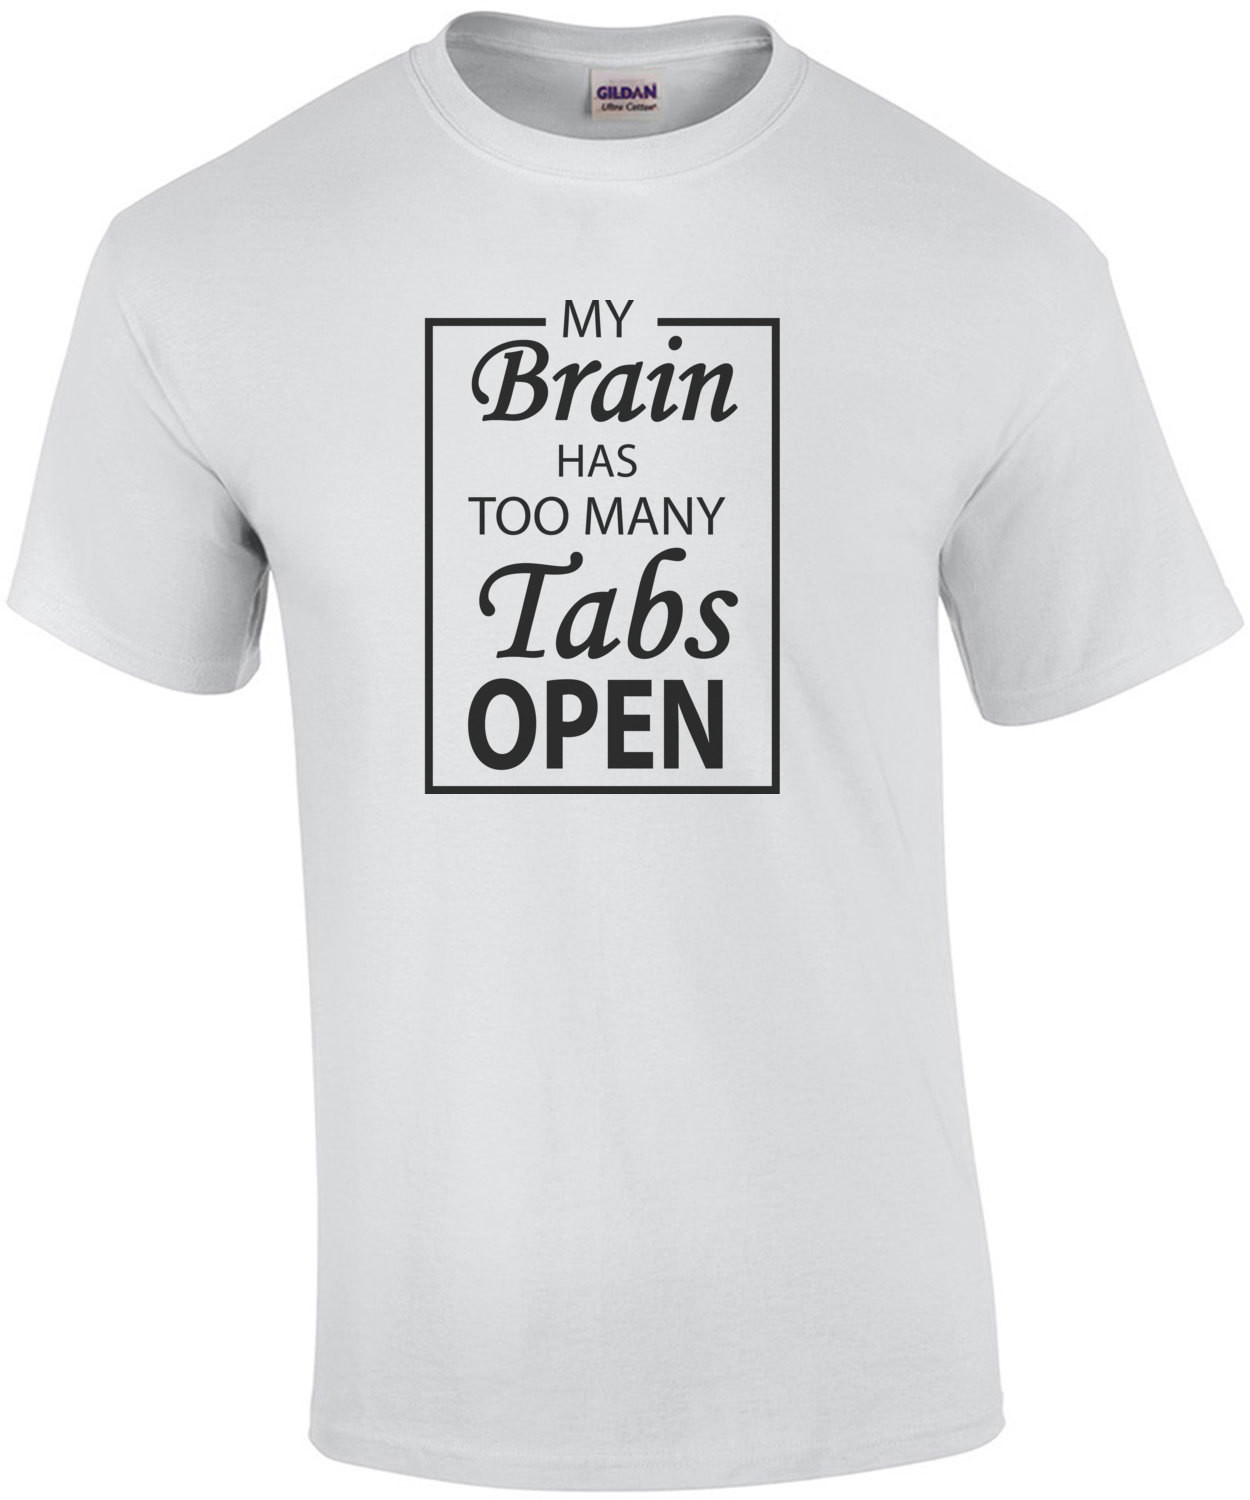 My brain has too many tabs open - funny t-shirt